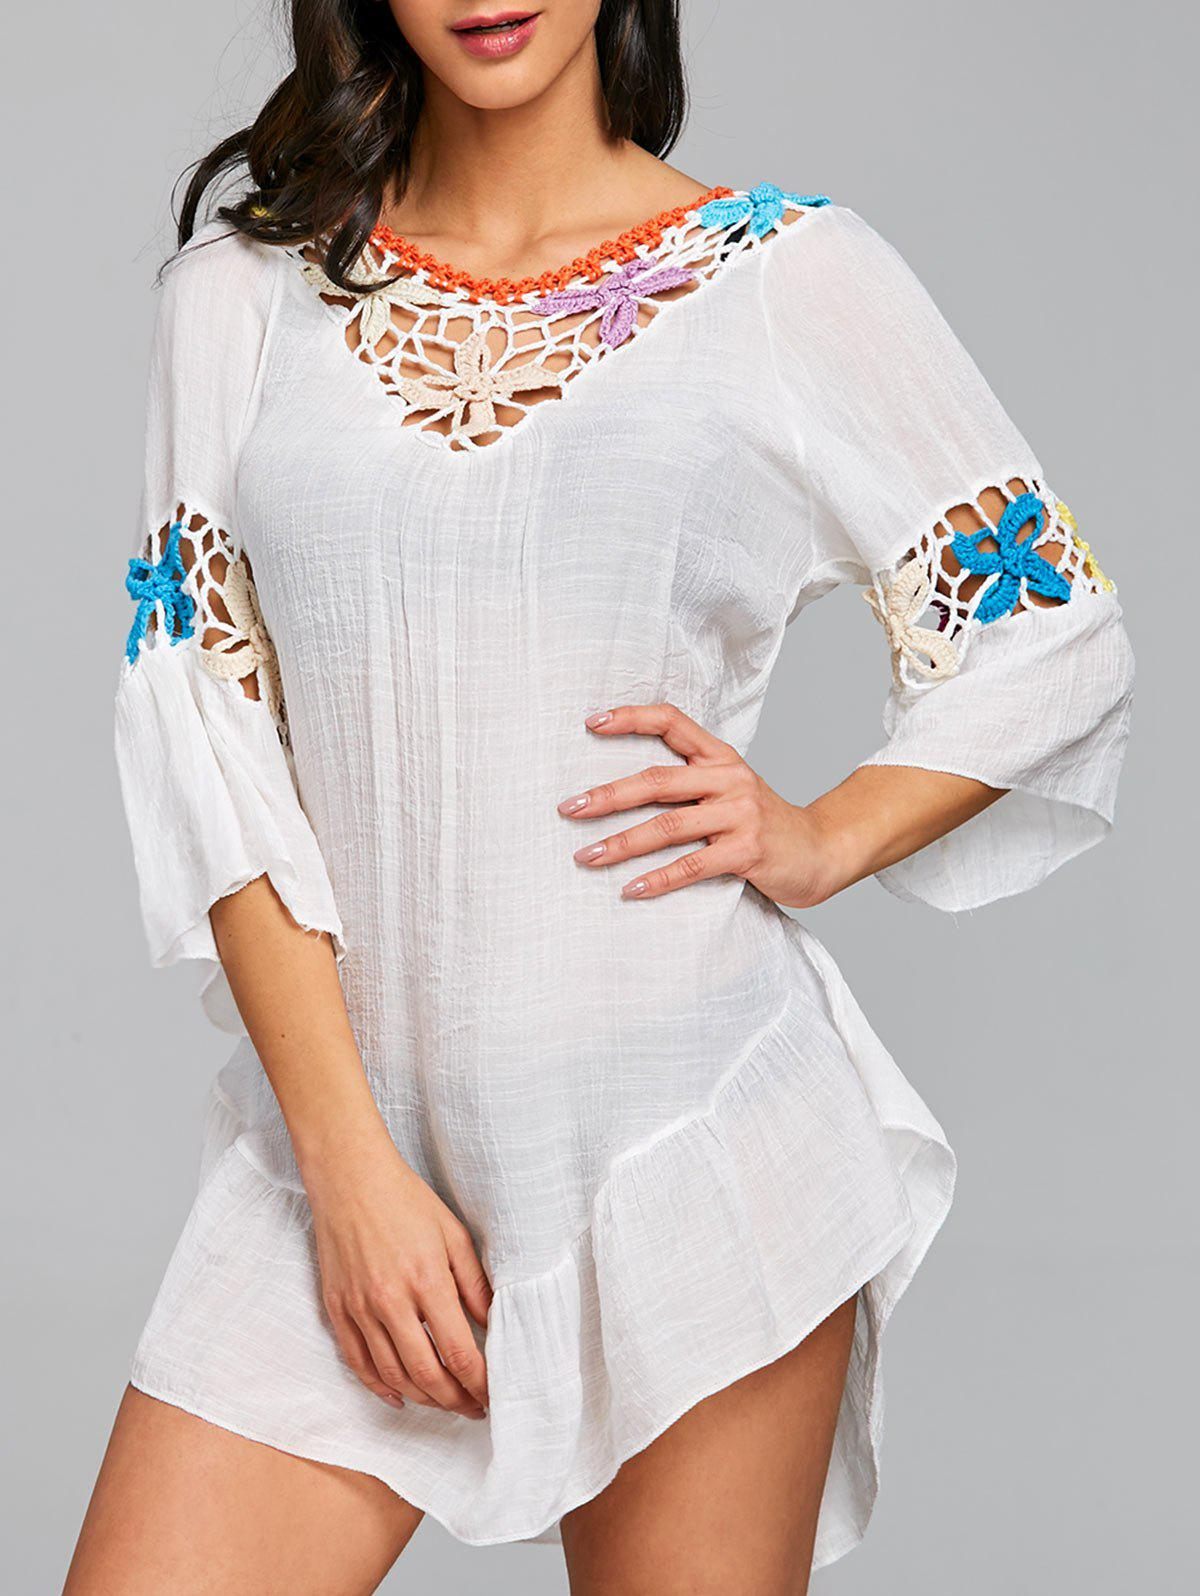 Flounce Floral Crochet Panel Cover Up Dress - WHITE ONE SIZE